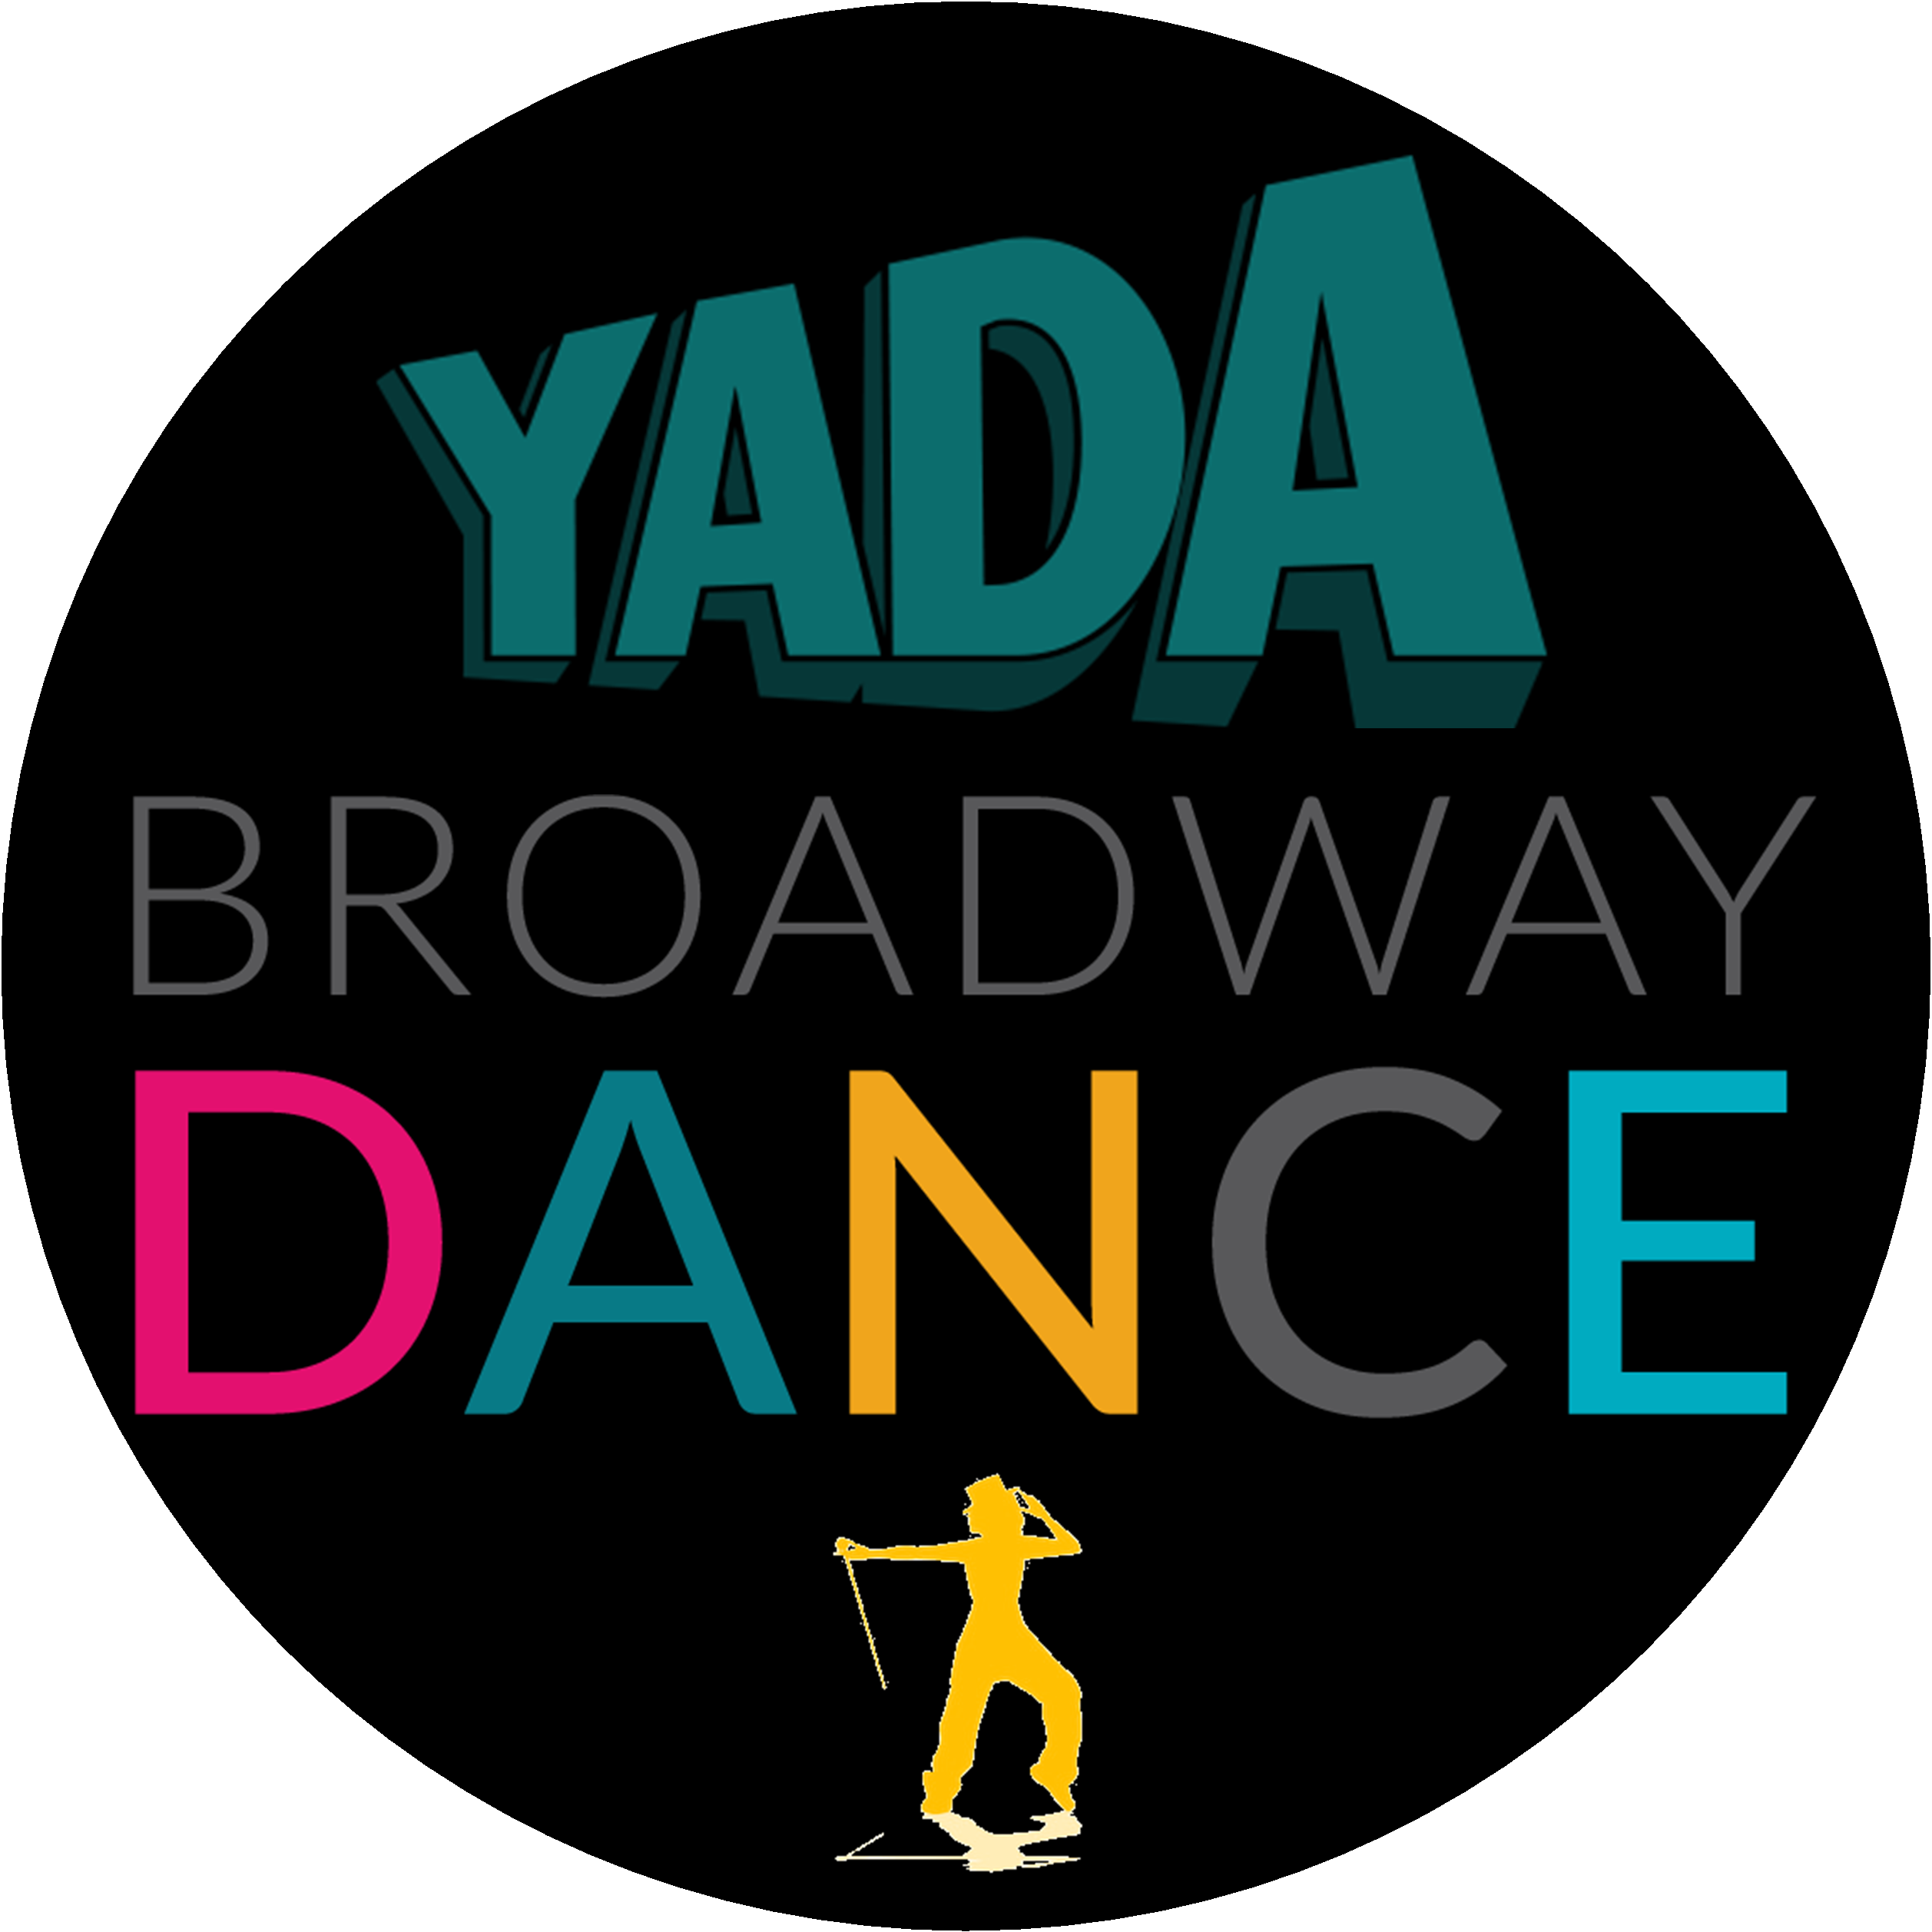 Broadway Dance no tagline